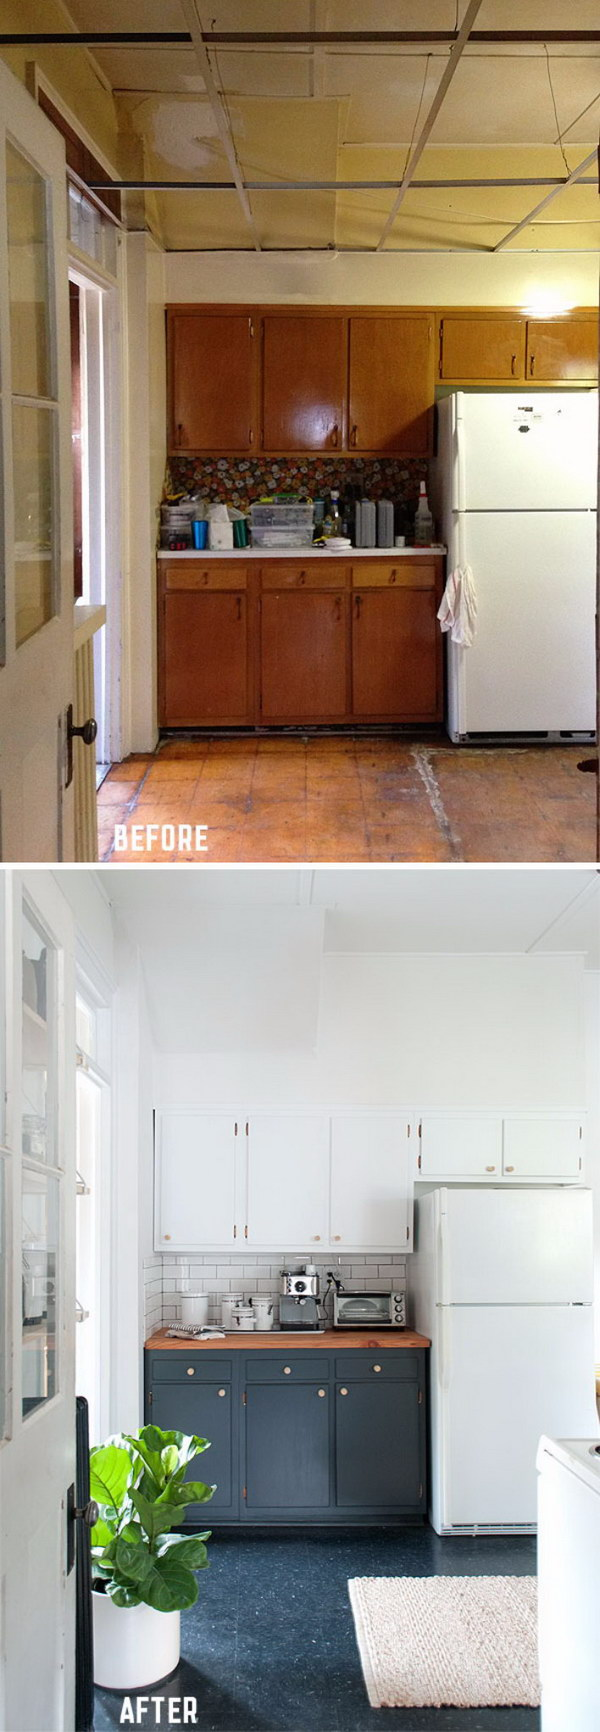 Paint the Outdated Cabinets Two Tone for a High Contrast Look.